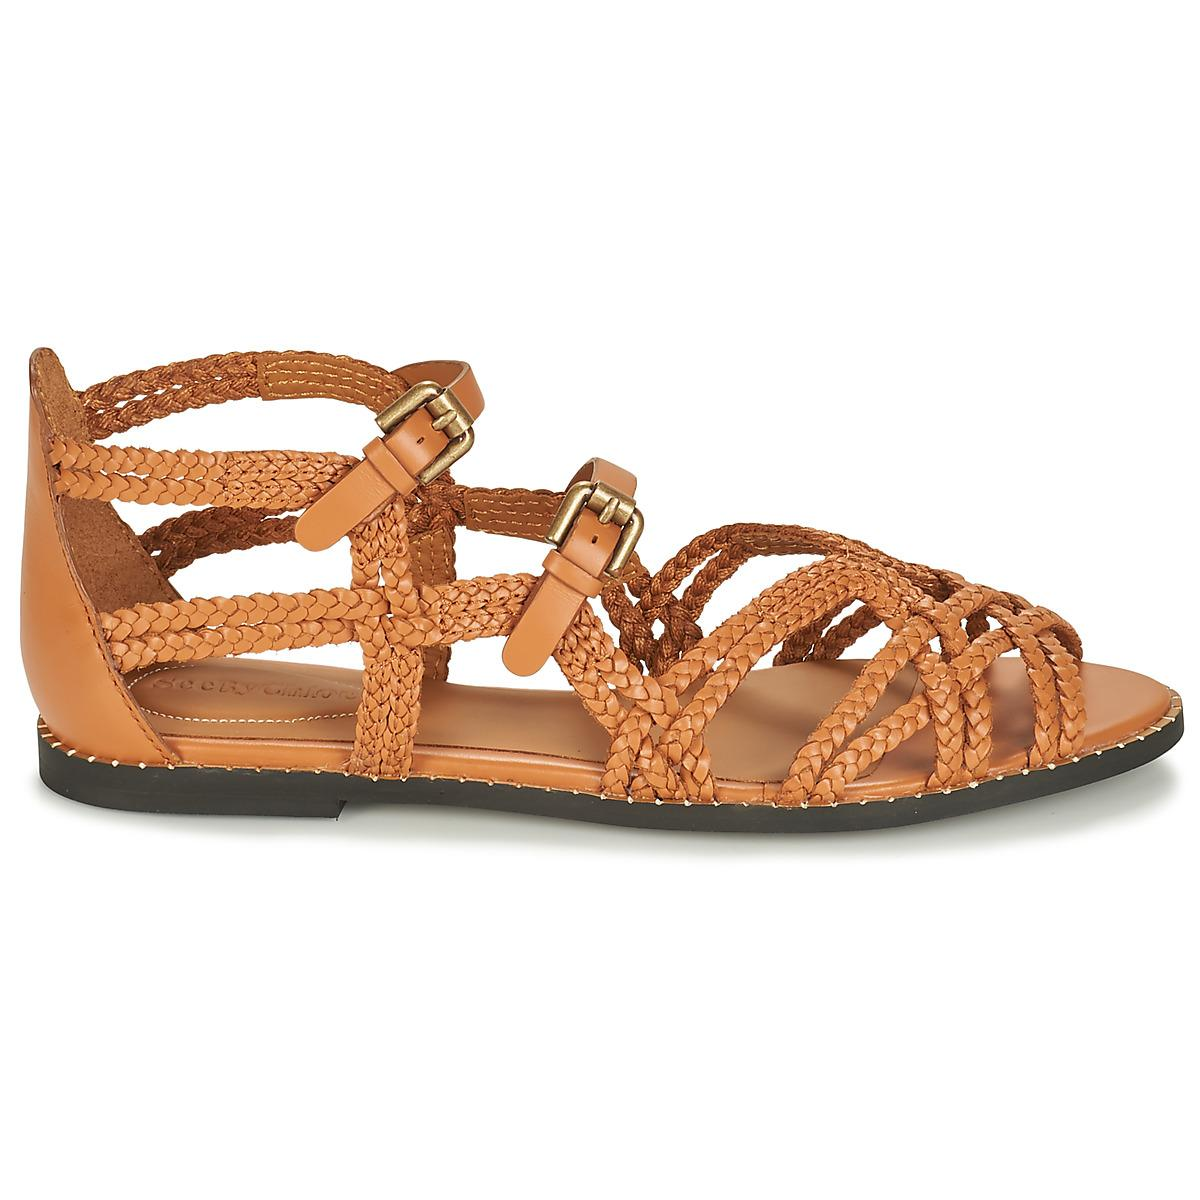 dd88b29b3a0 See By Chloé Braided Strappy Sandals in Brown - Save 14% - Lyst